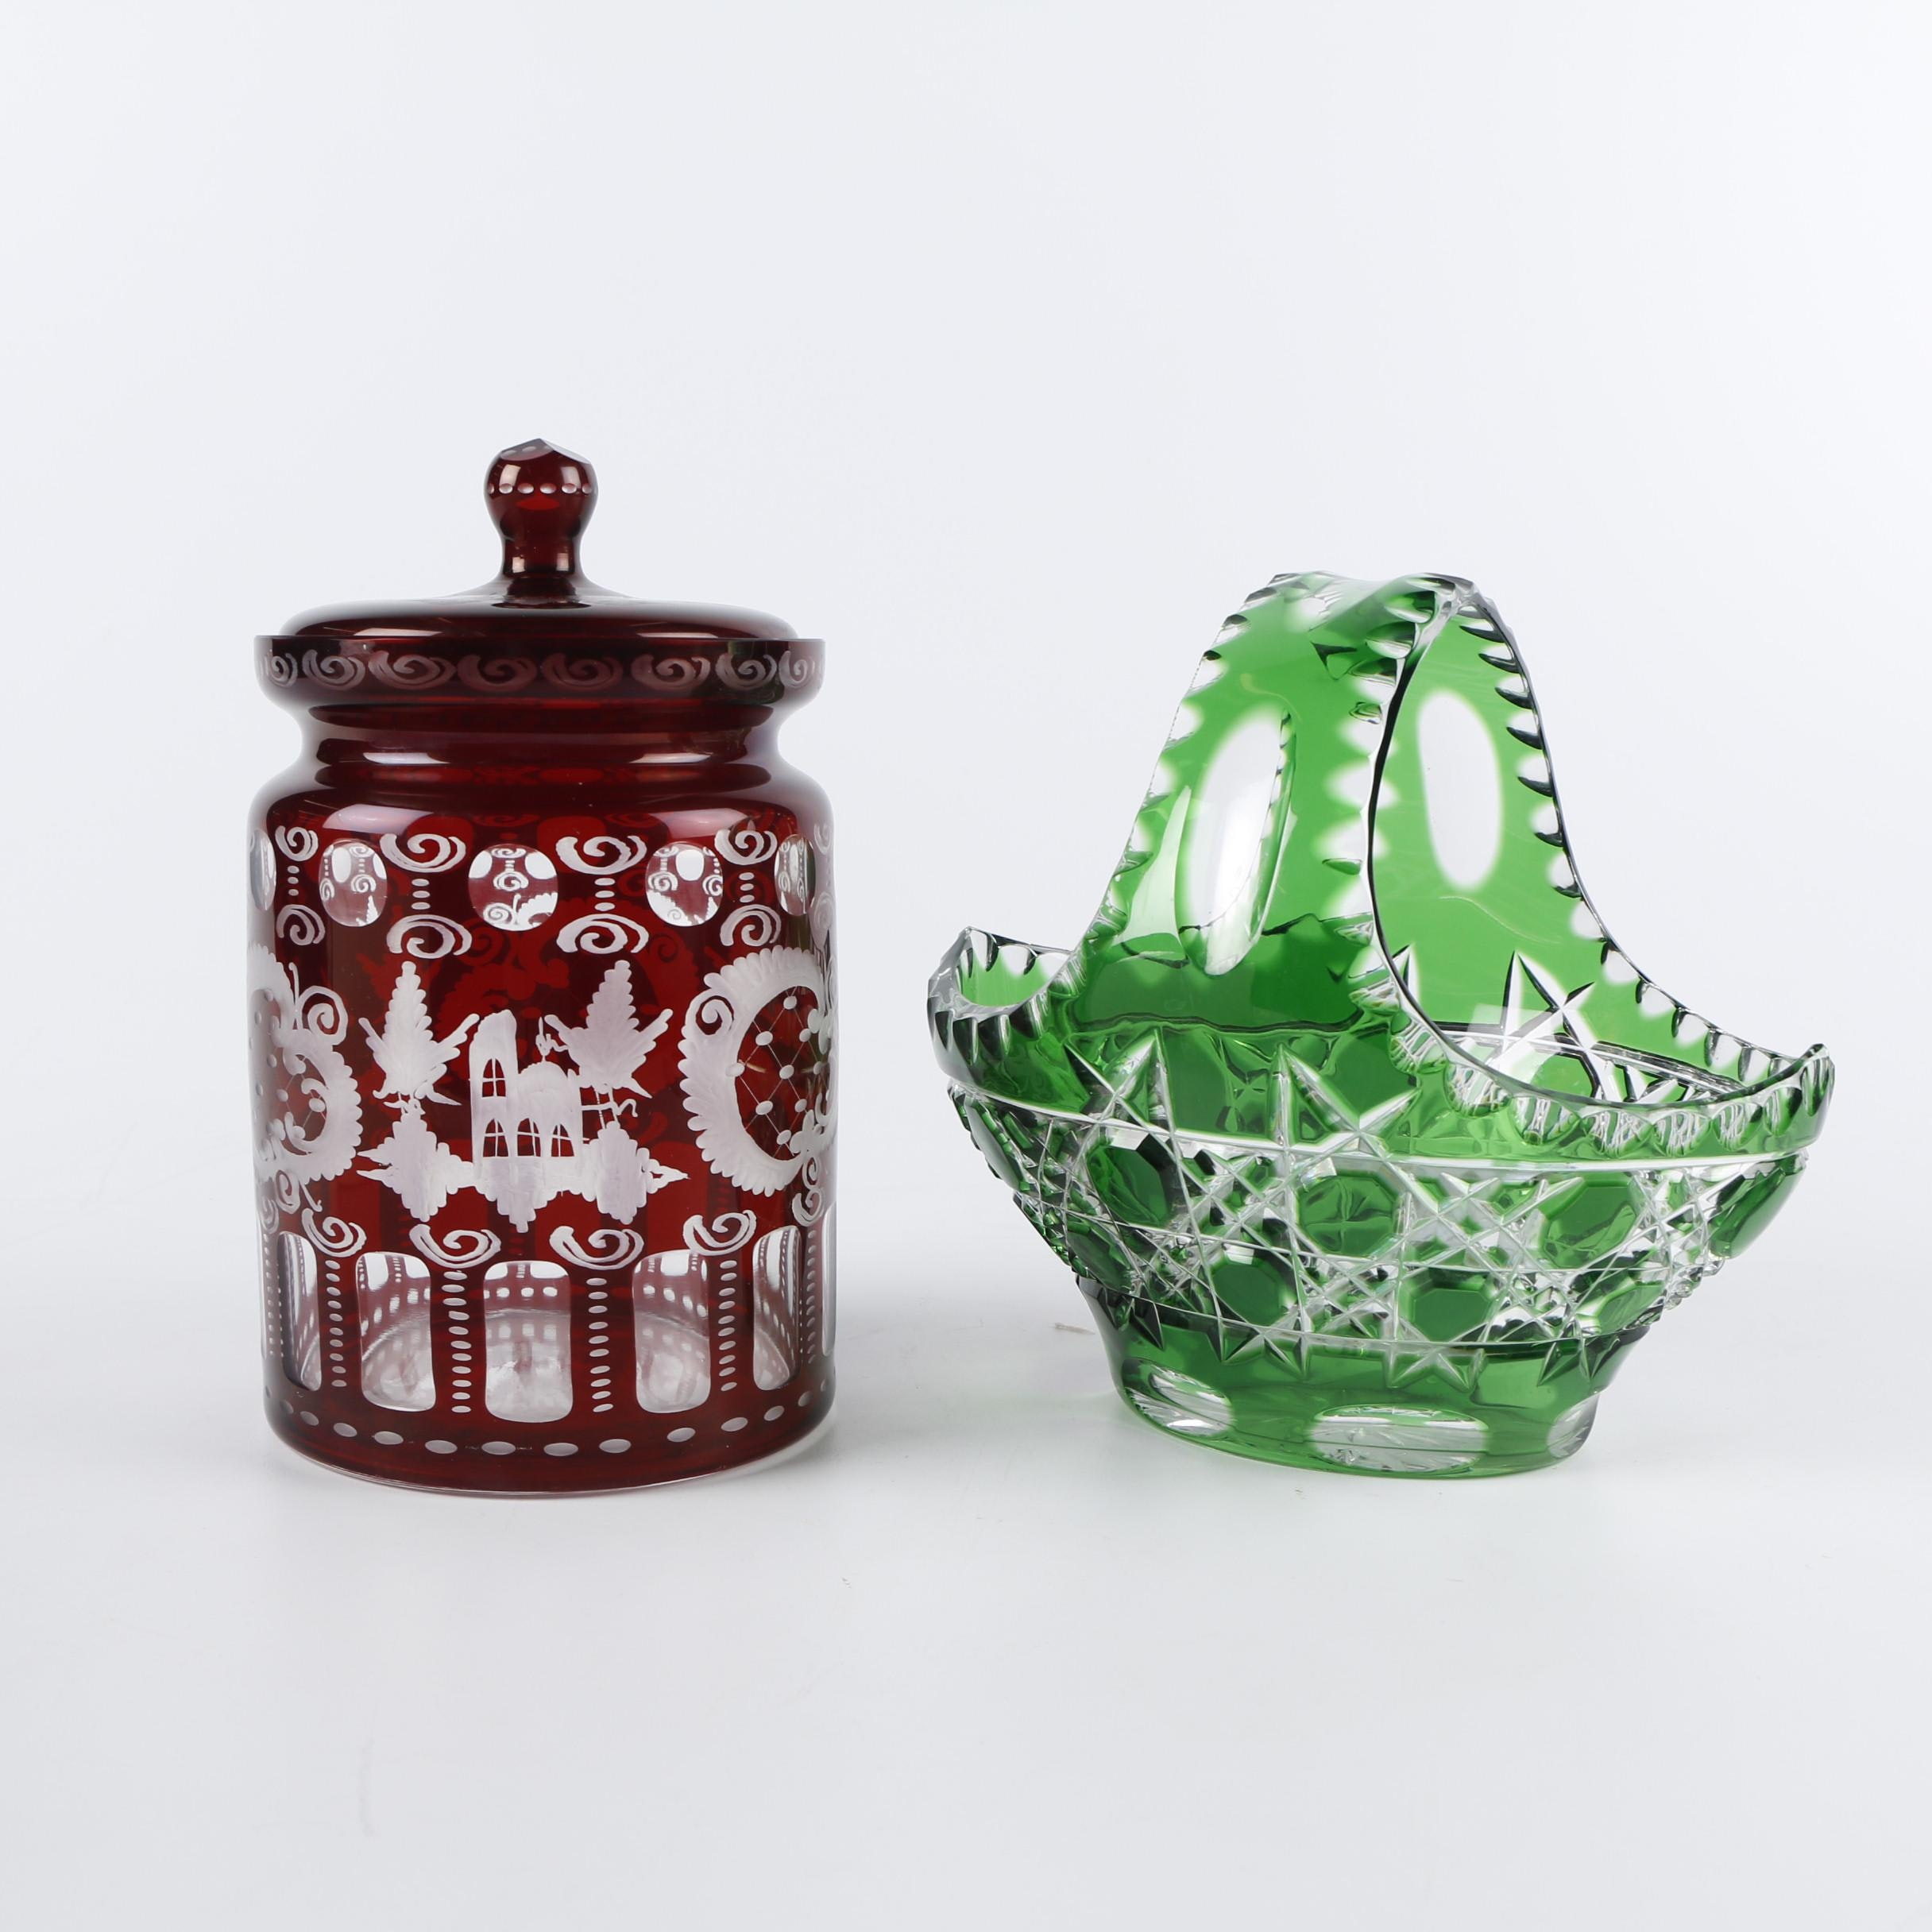 Egermann Flashed and Etched Biscuit Barrel with Cut Emerald Crystal Basket